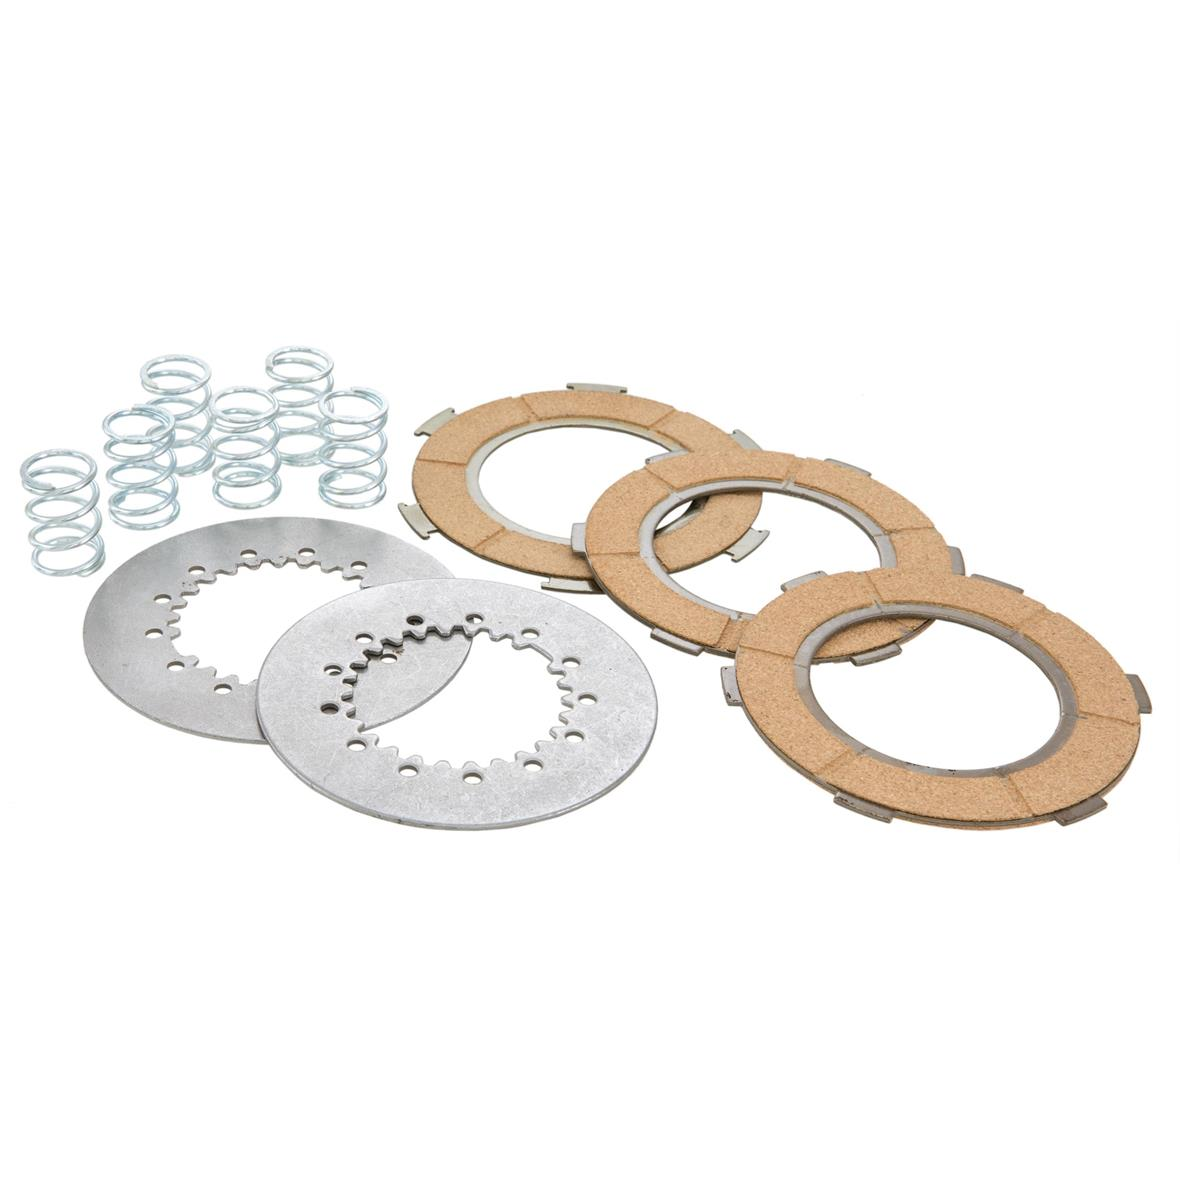 Product Image for 'Clutch Friction Plates MALOSSI SportTitle'